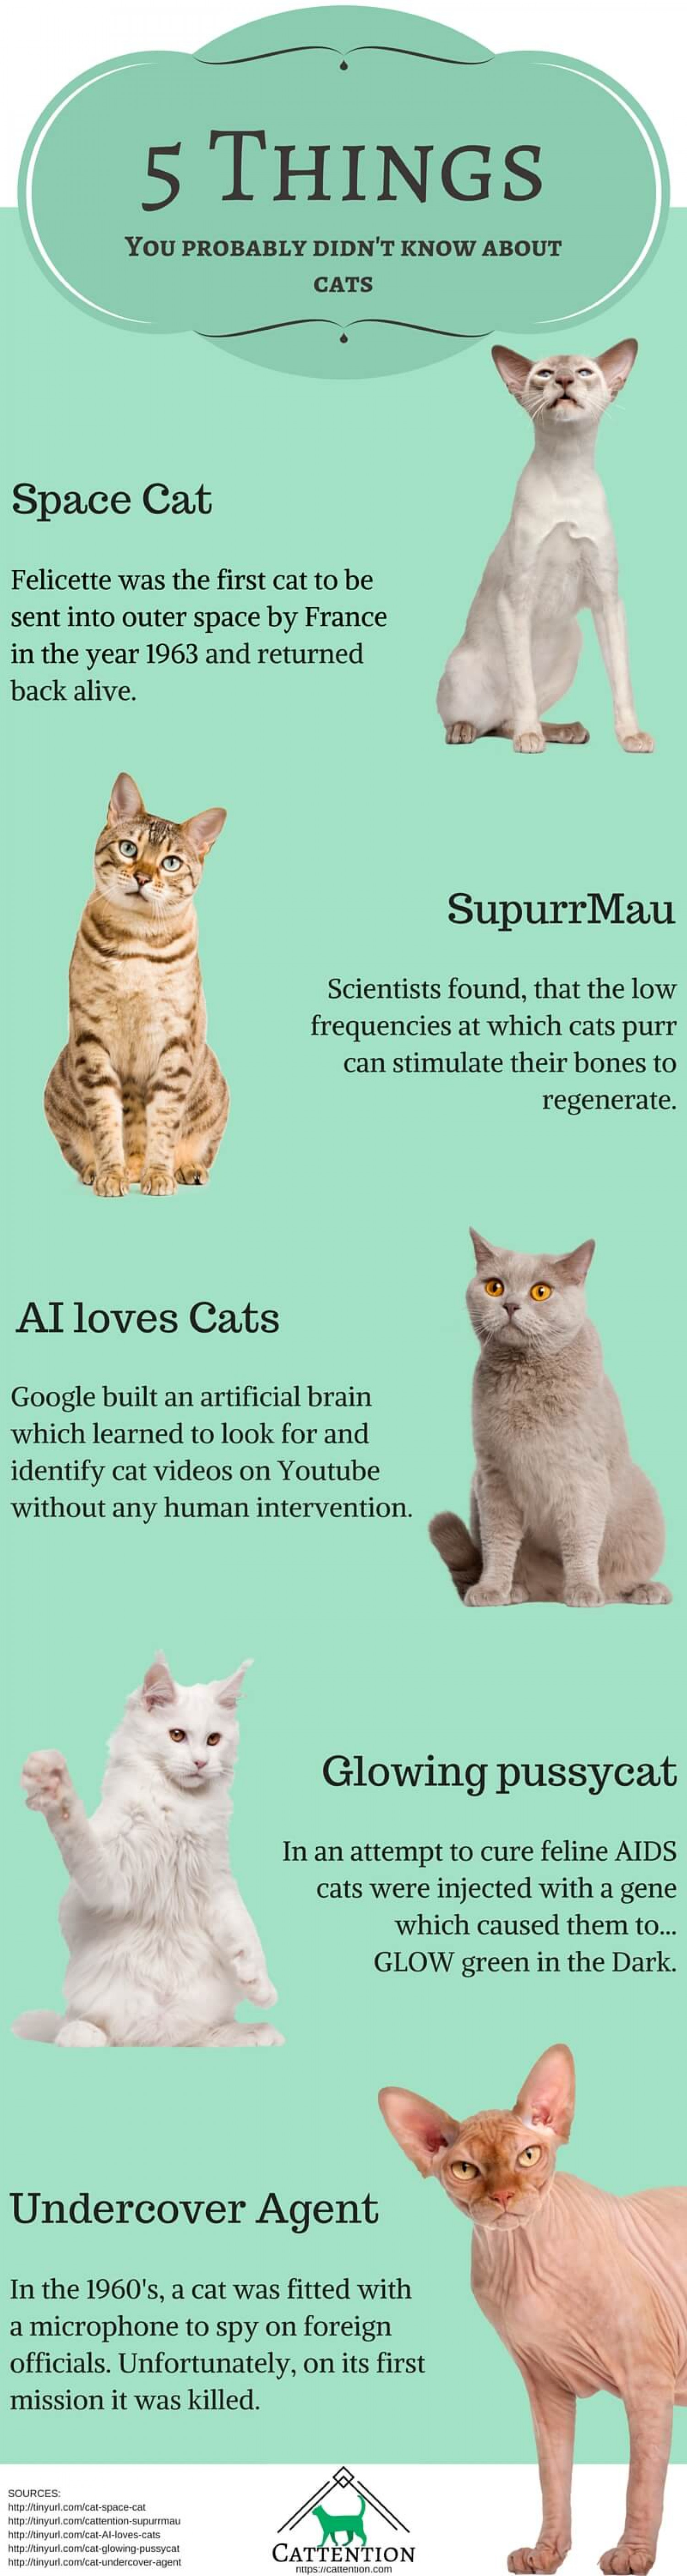 5 Things You Probably Didn't Know About Cats Infographic